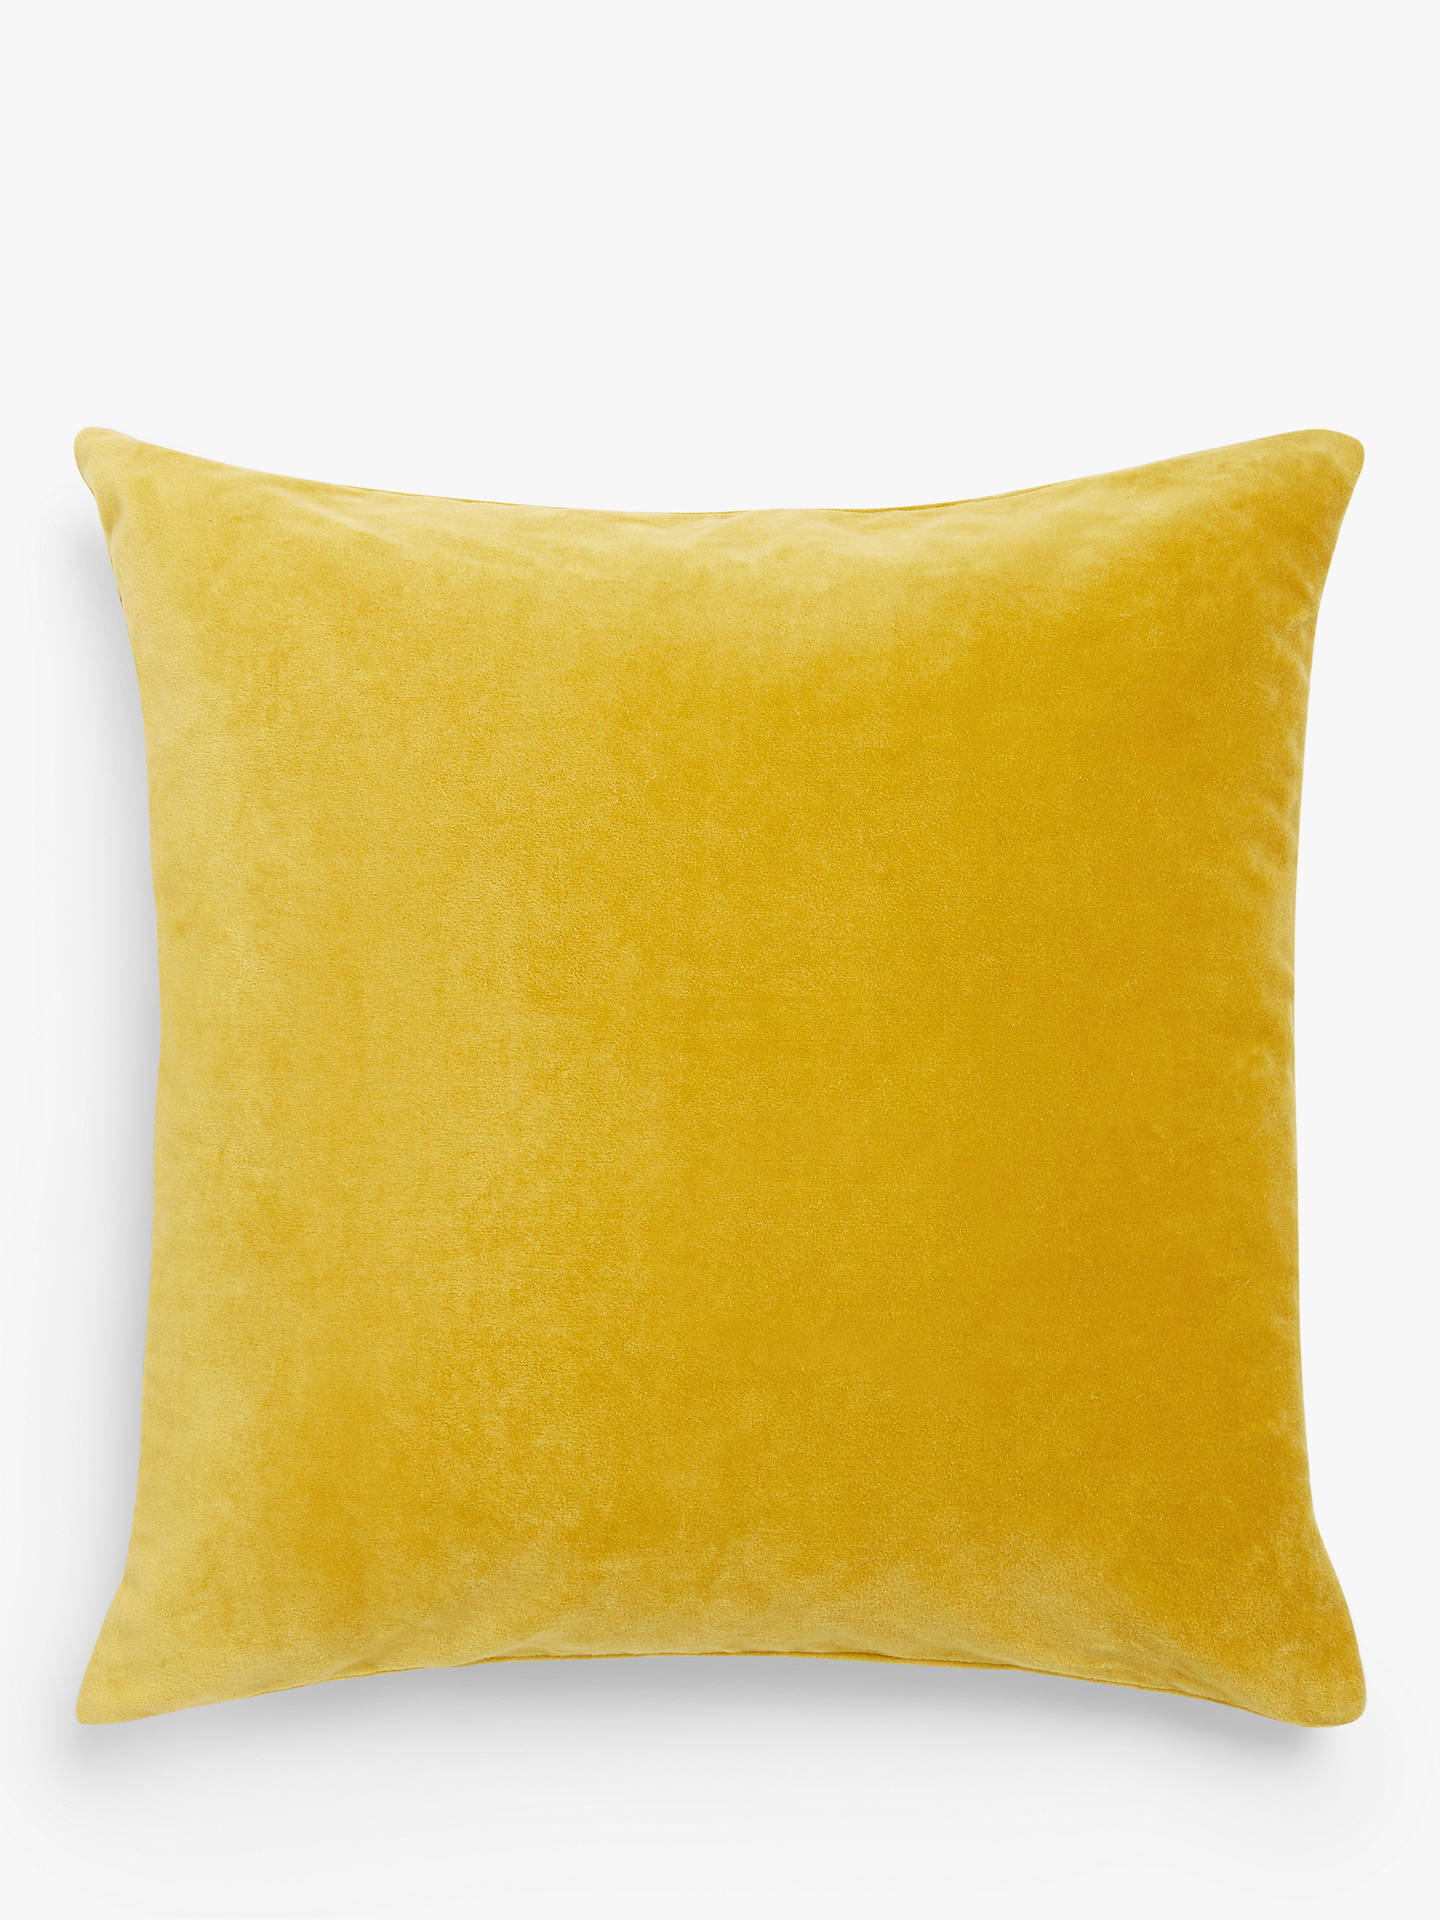 BuyJohn Lewis & Partners Cotton Velvet Cushion, Gold Online at johnlewis.com